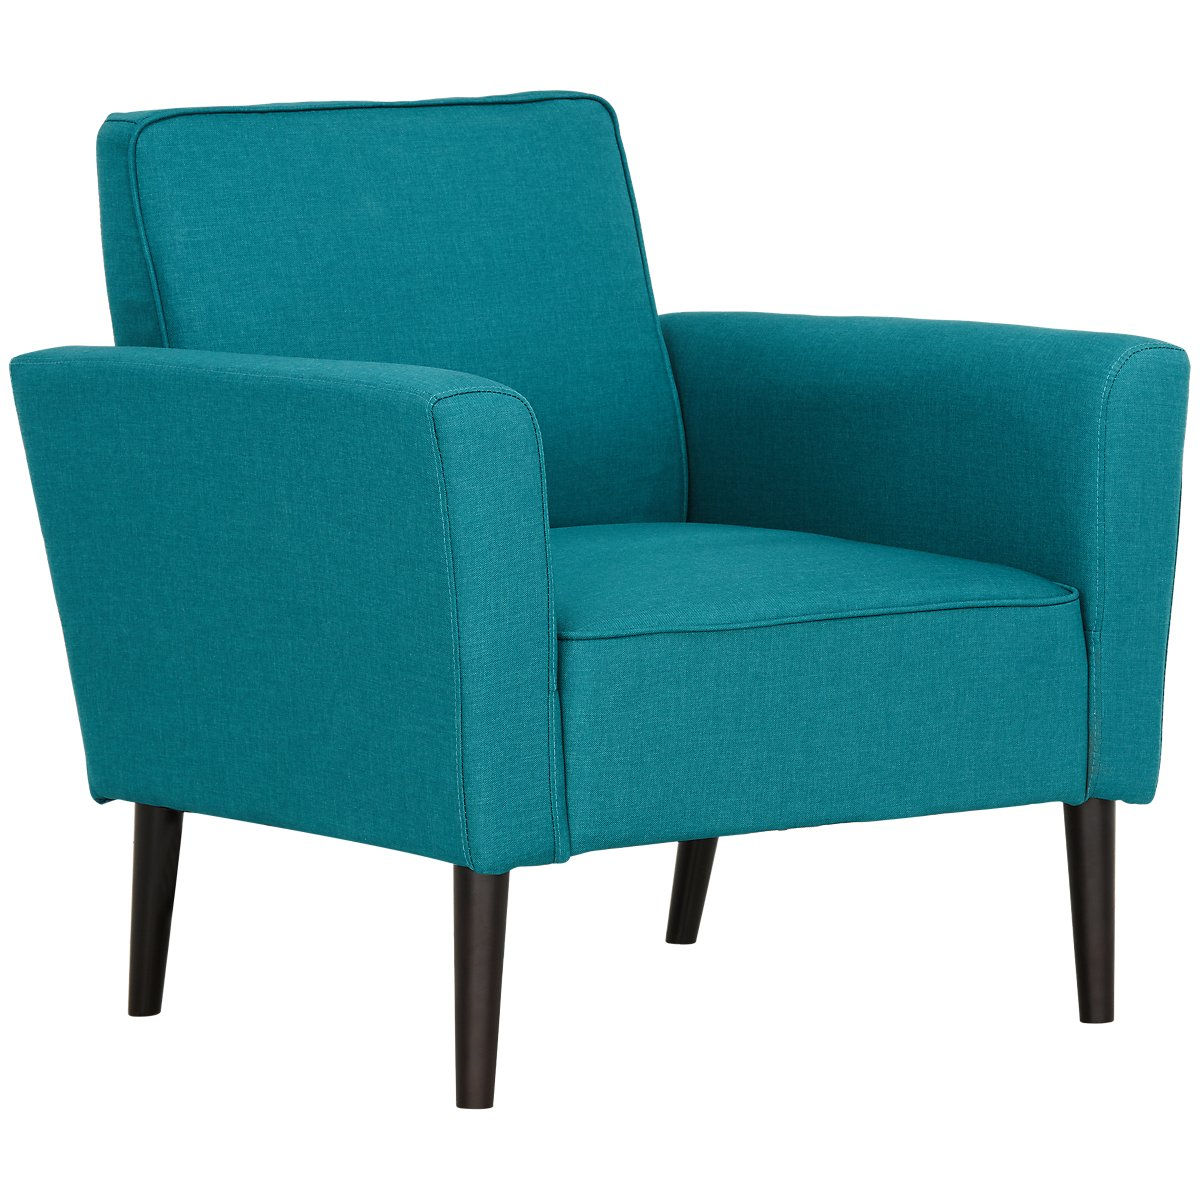 City furniture sage teal accent chair - Furniture image ...